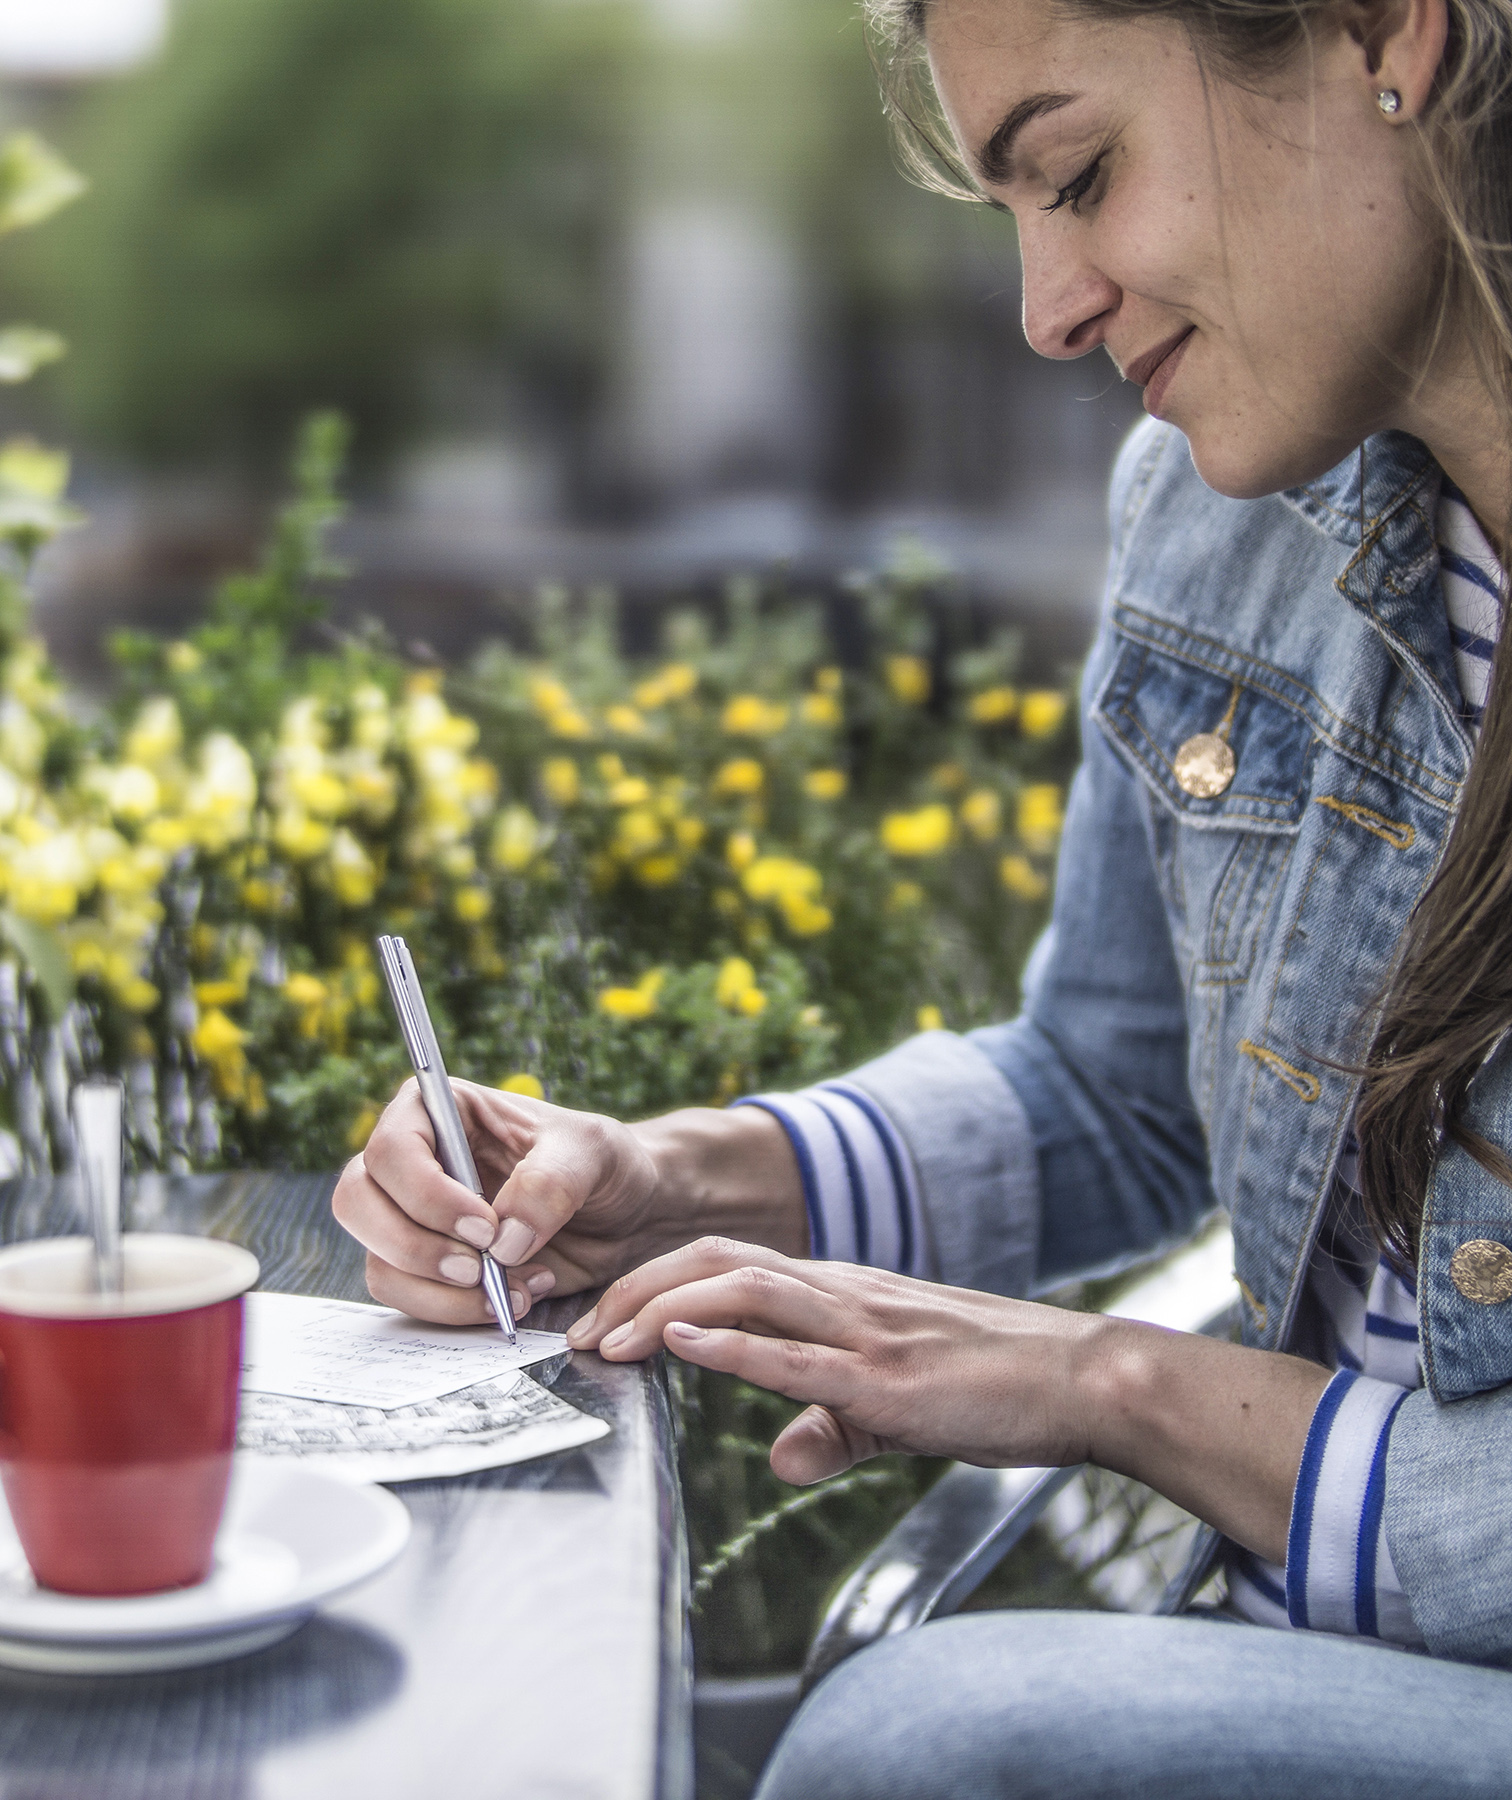 Woman writing letter at outdoor café